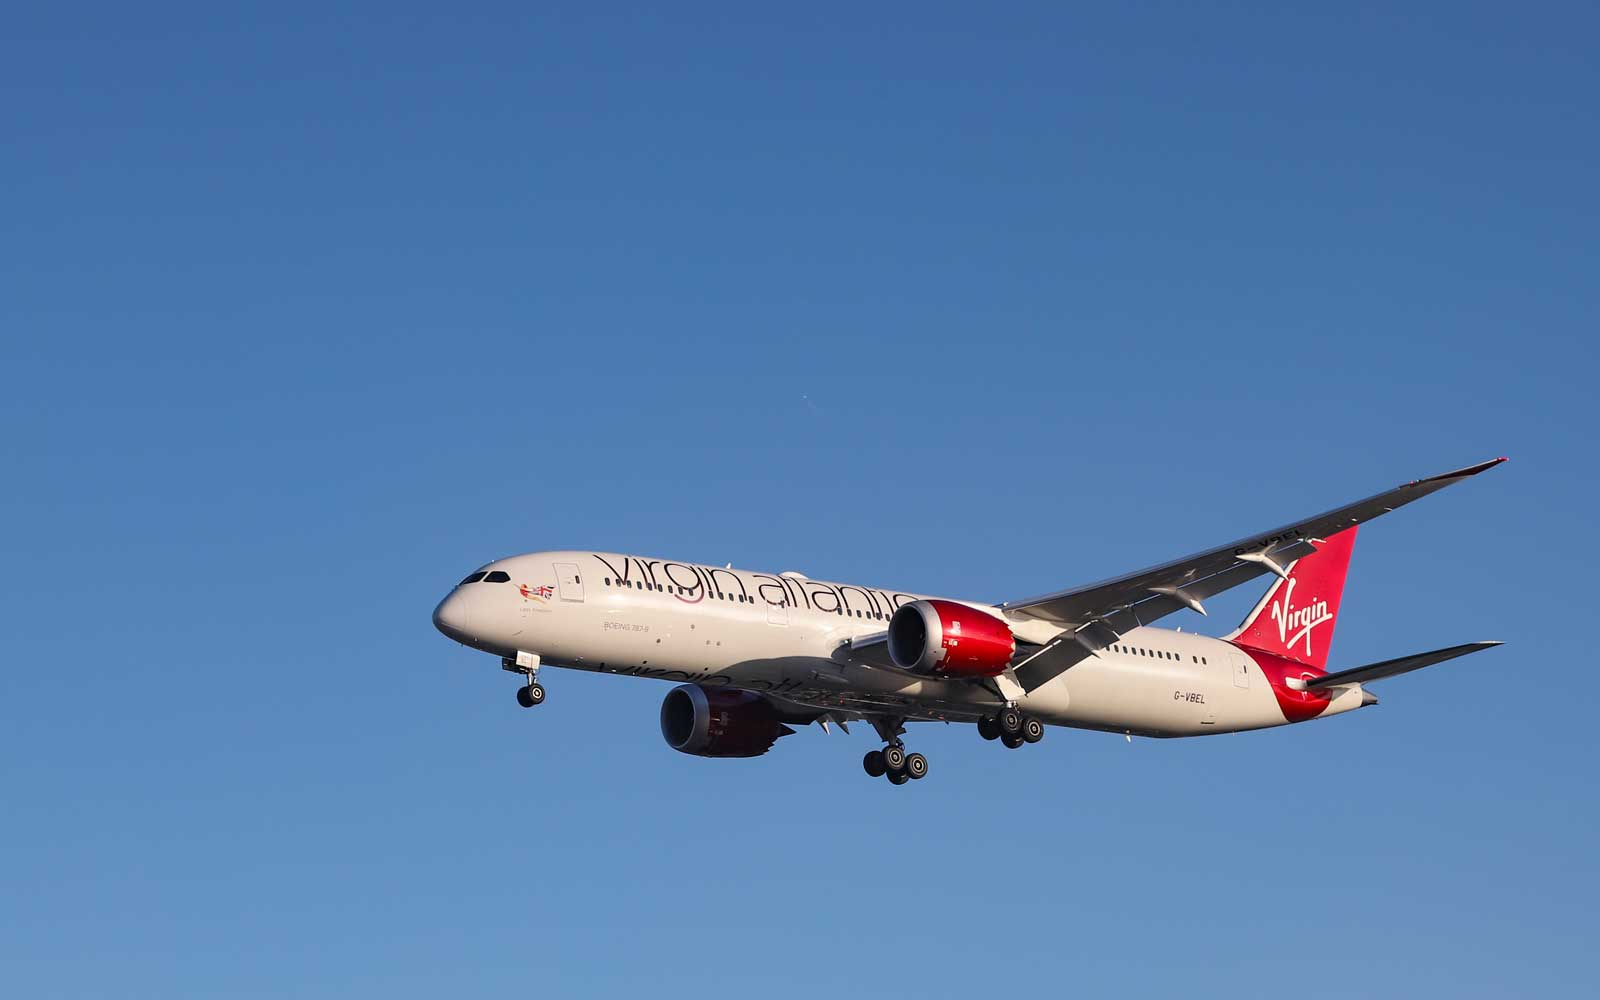 A Virgin Atlantic Flight Just Broke a Record by Hitting 801 MPH on Its Way From L.A. to London